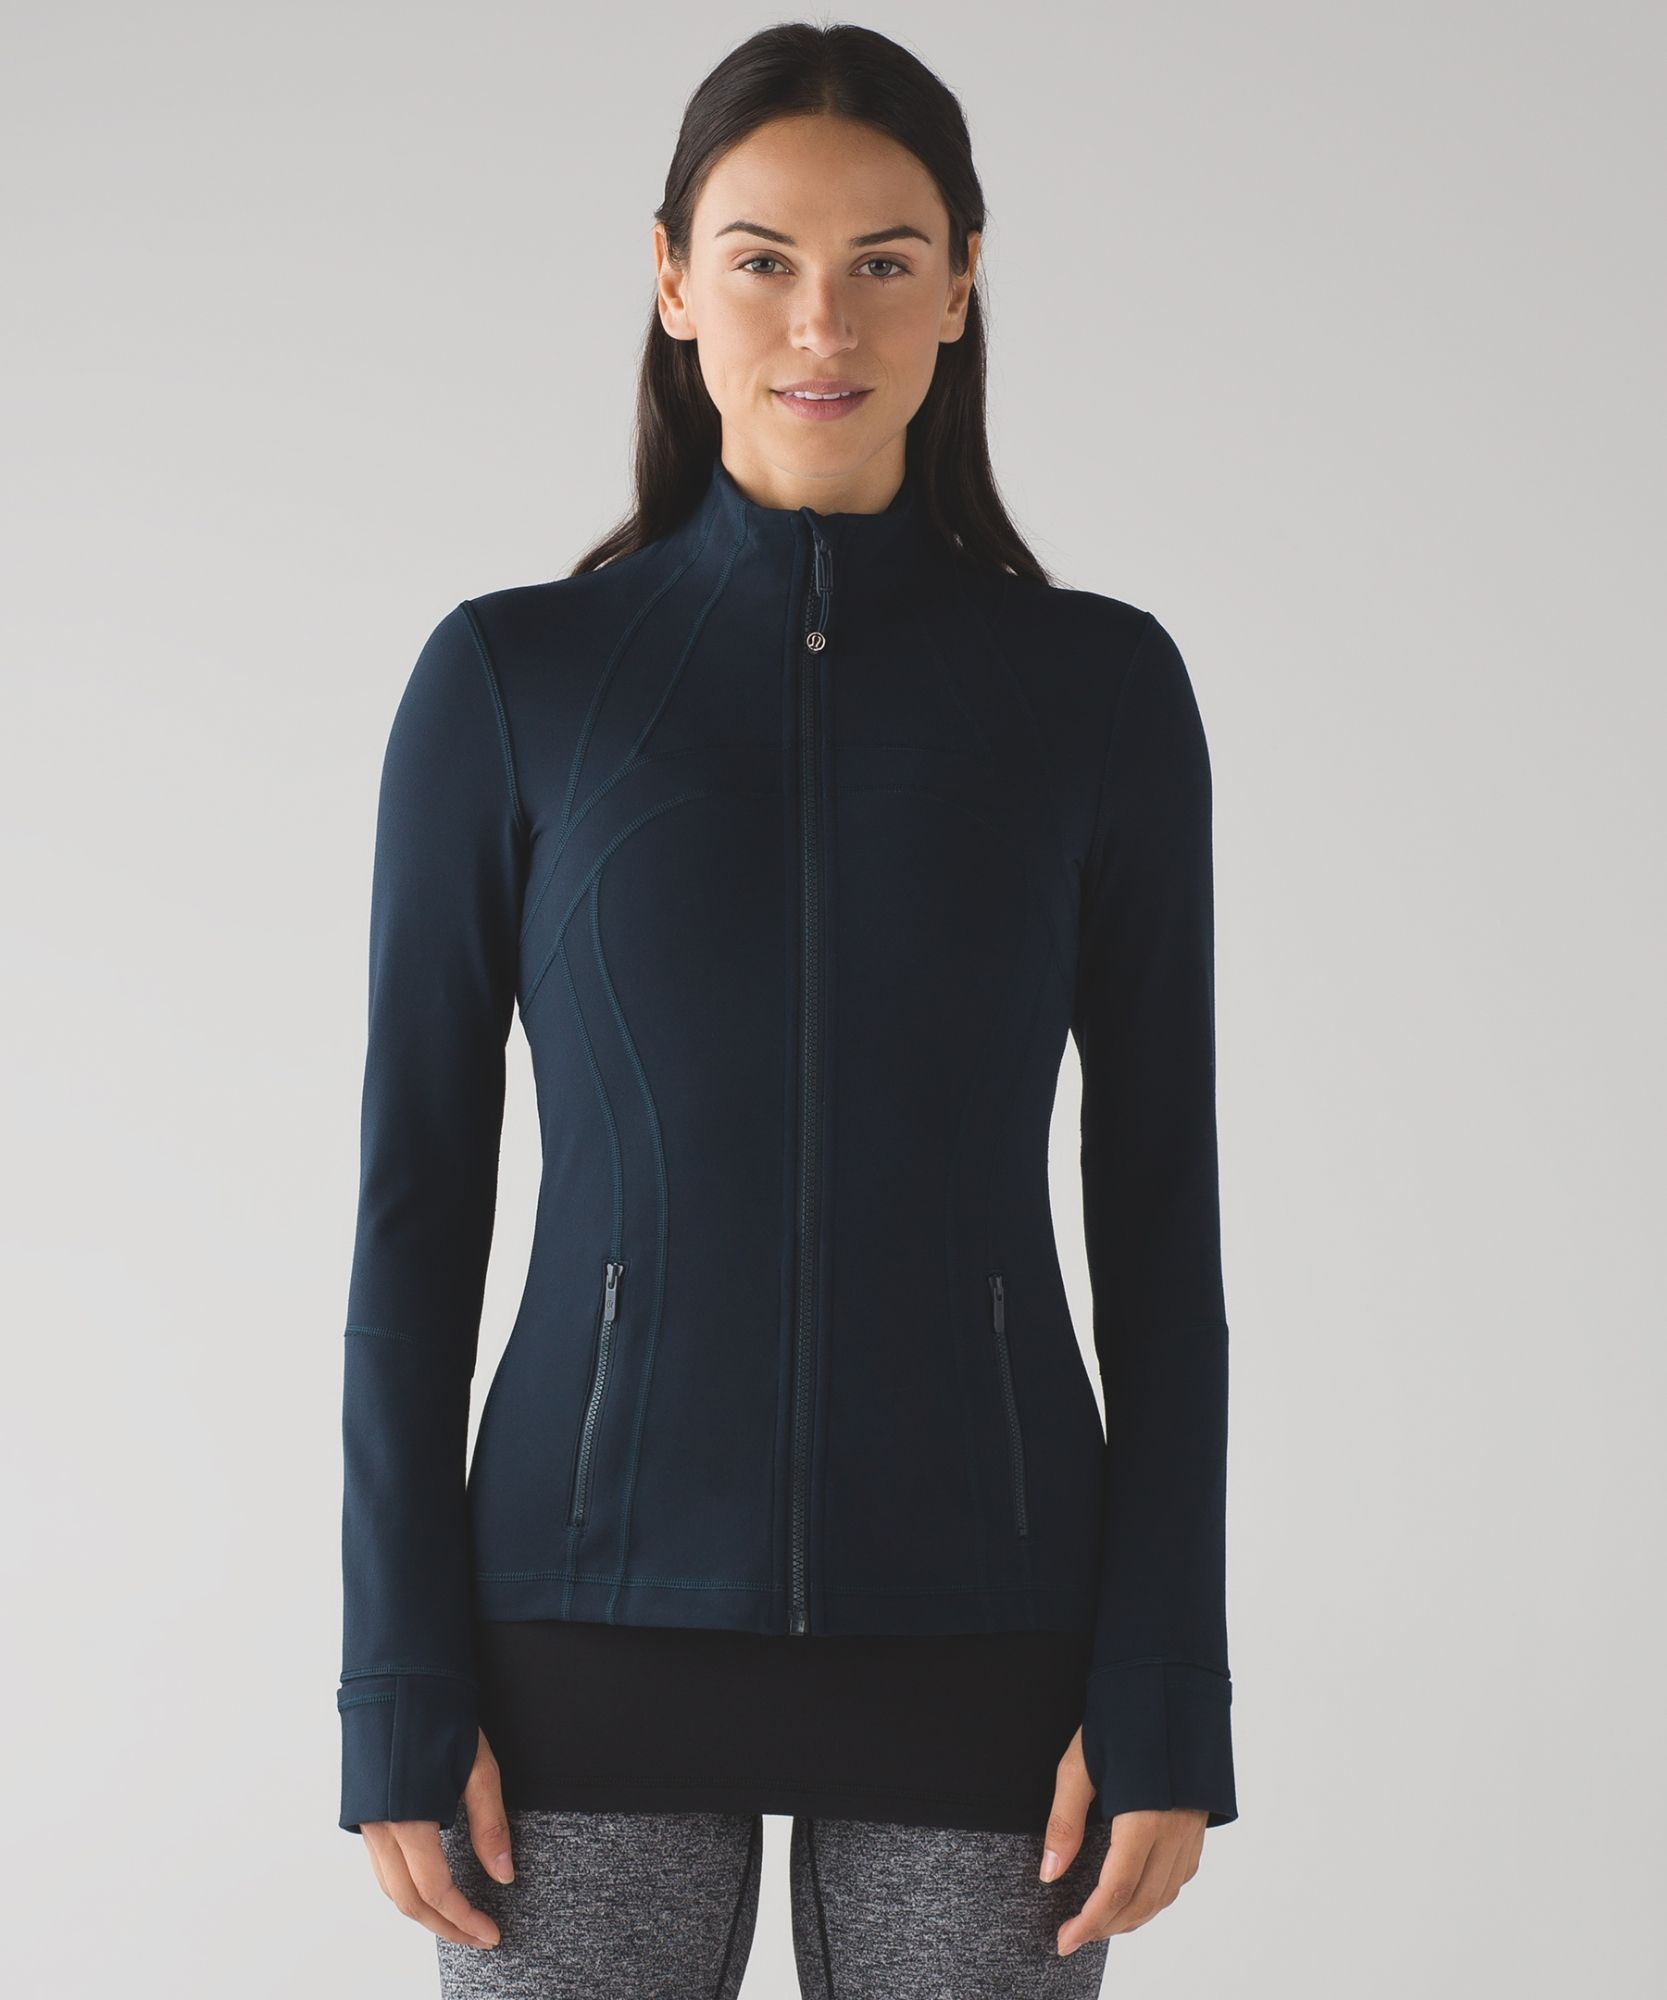 29f933e9 Define Jacket - lululemon We designed this fitted jacket with sweat-wicking  fabric and built-in ventilation to take you to and from the studio.